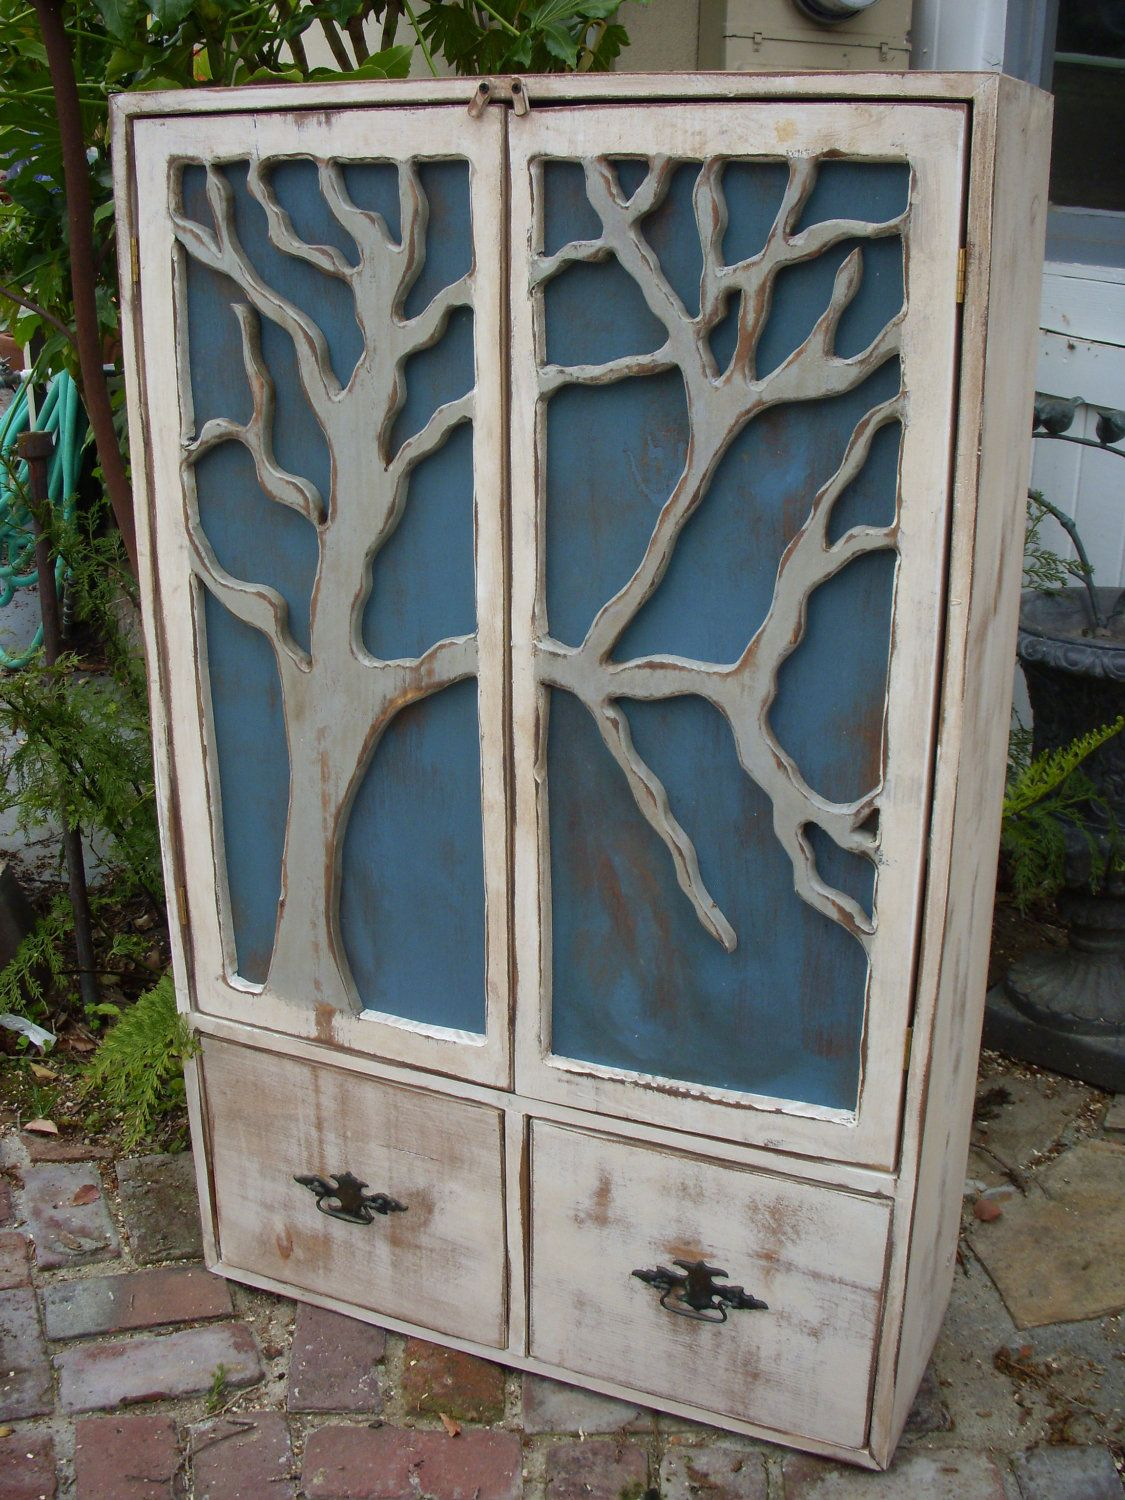 LOCAL ONLY   Artistic Furniture   Storage Shelves, Cabin Decor   French  Country Chic   Tree Art   Rustic Home Decor